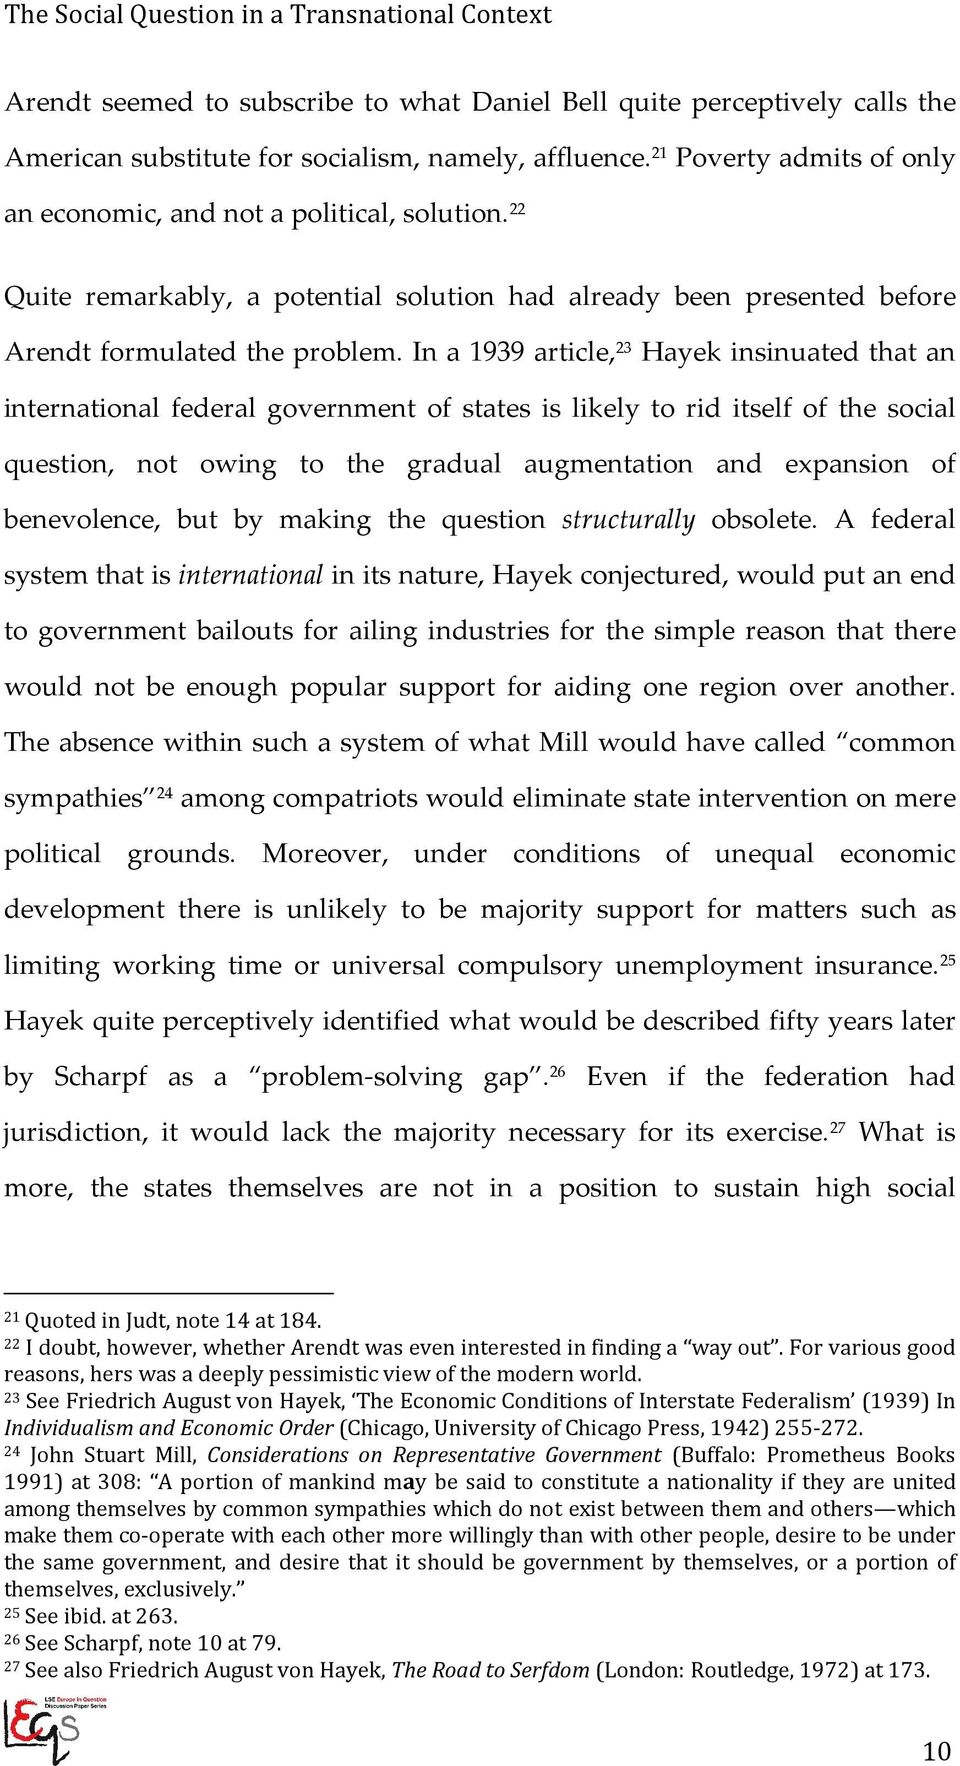 In a 1939 article, 23 Hayek insinuated that an international federal government of states is likely to rid itself of the social question, not owing to the gradual augmentation and expansion of